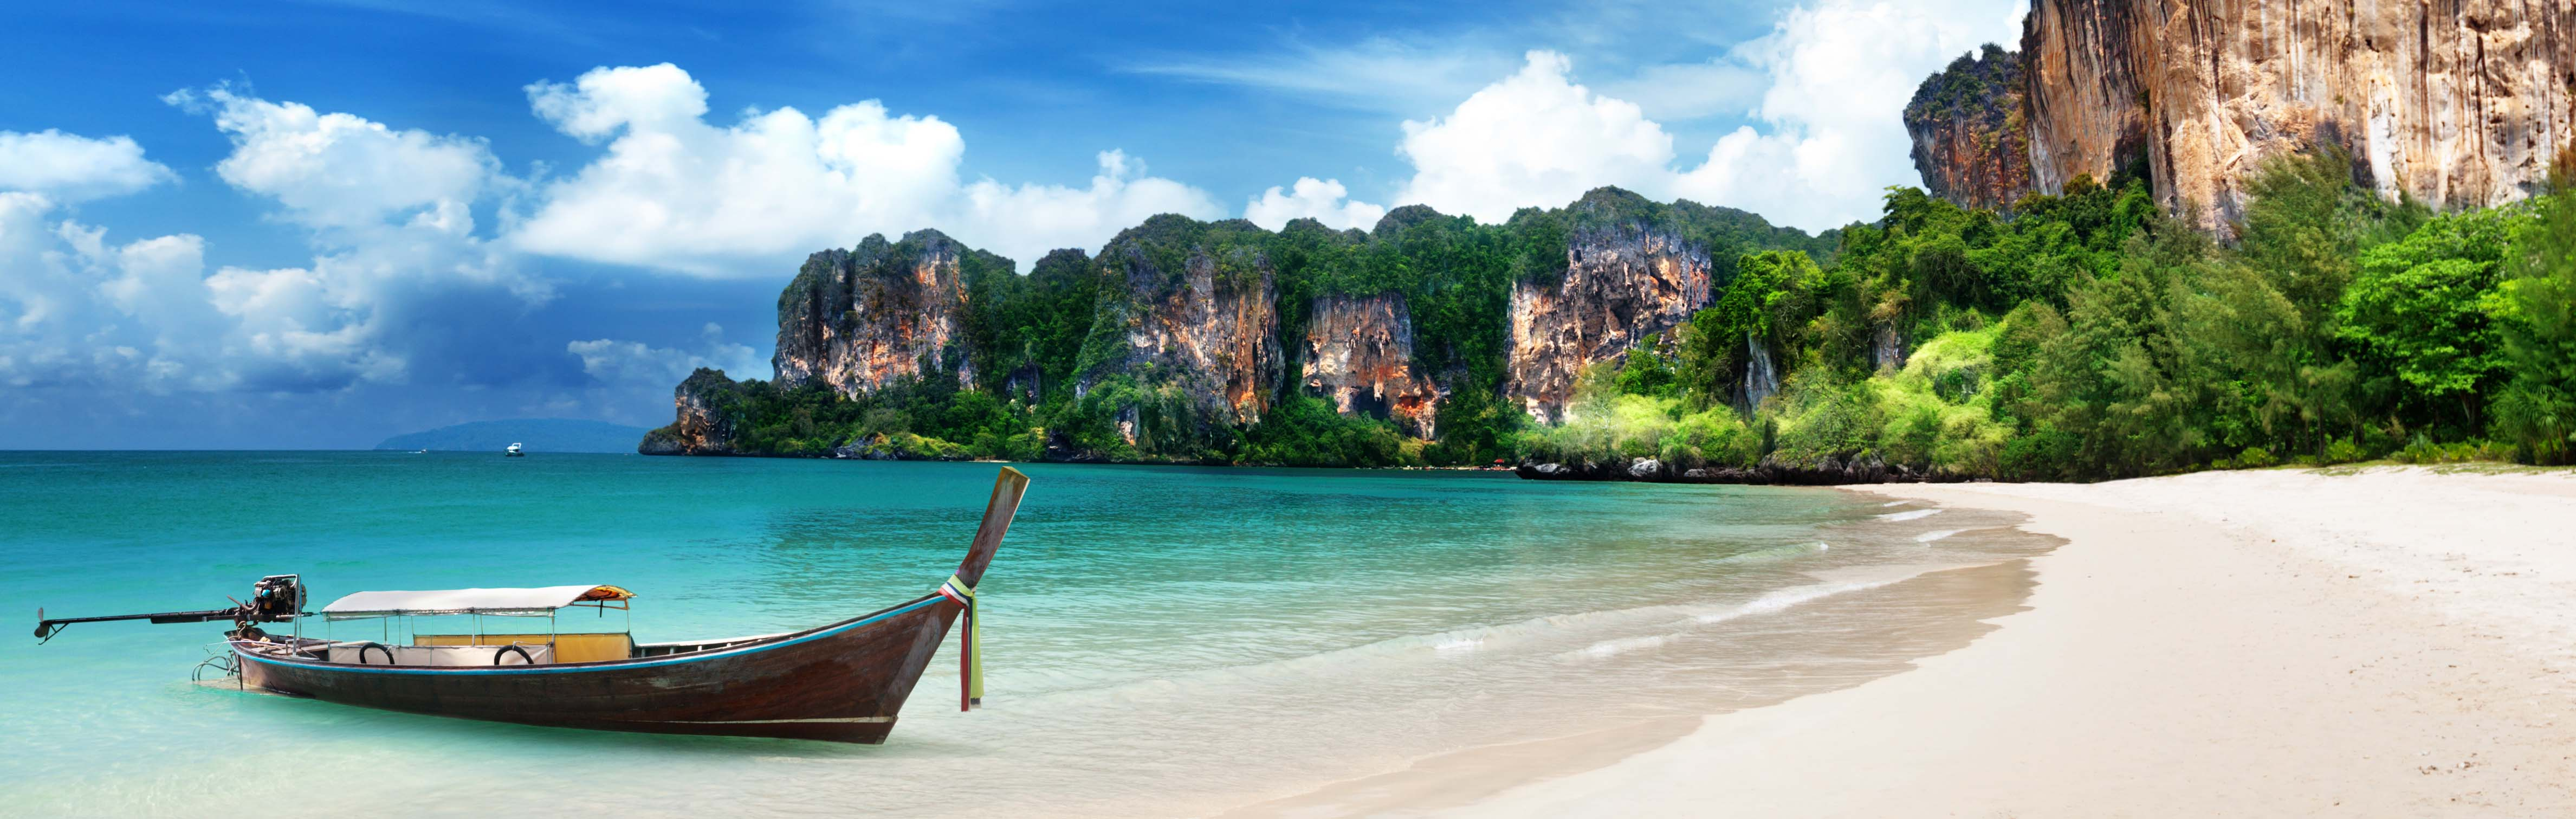 Krabi, Thailand is known for its beautiful beaches.